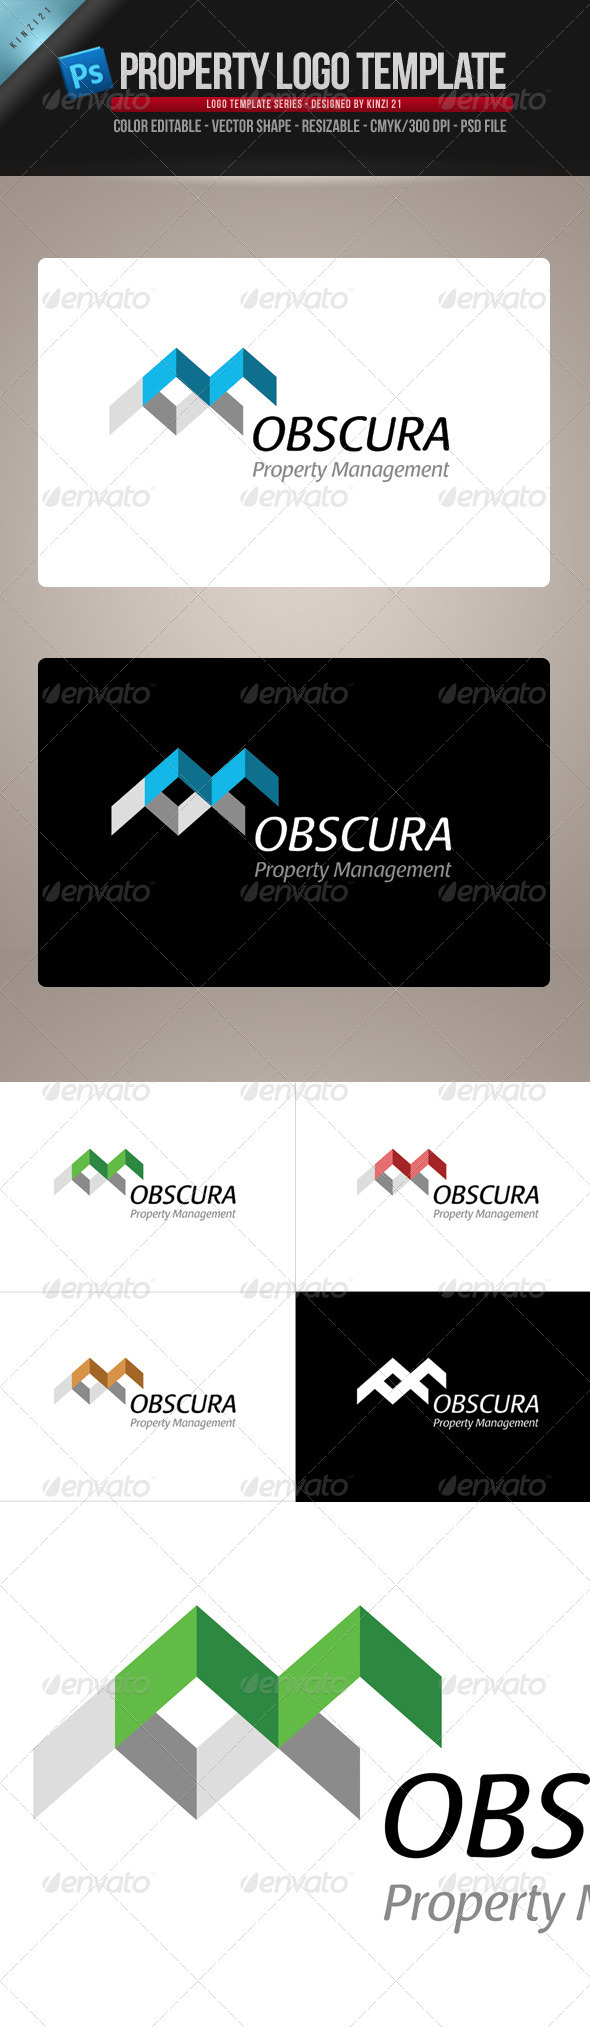 Property-Real Estate Logo Template - Vector Abstract